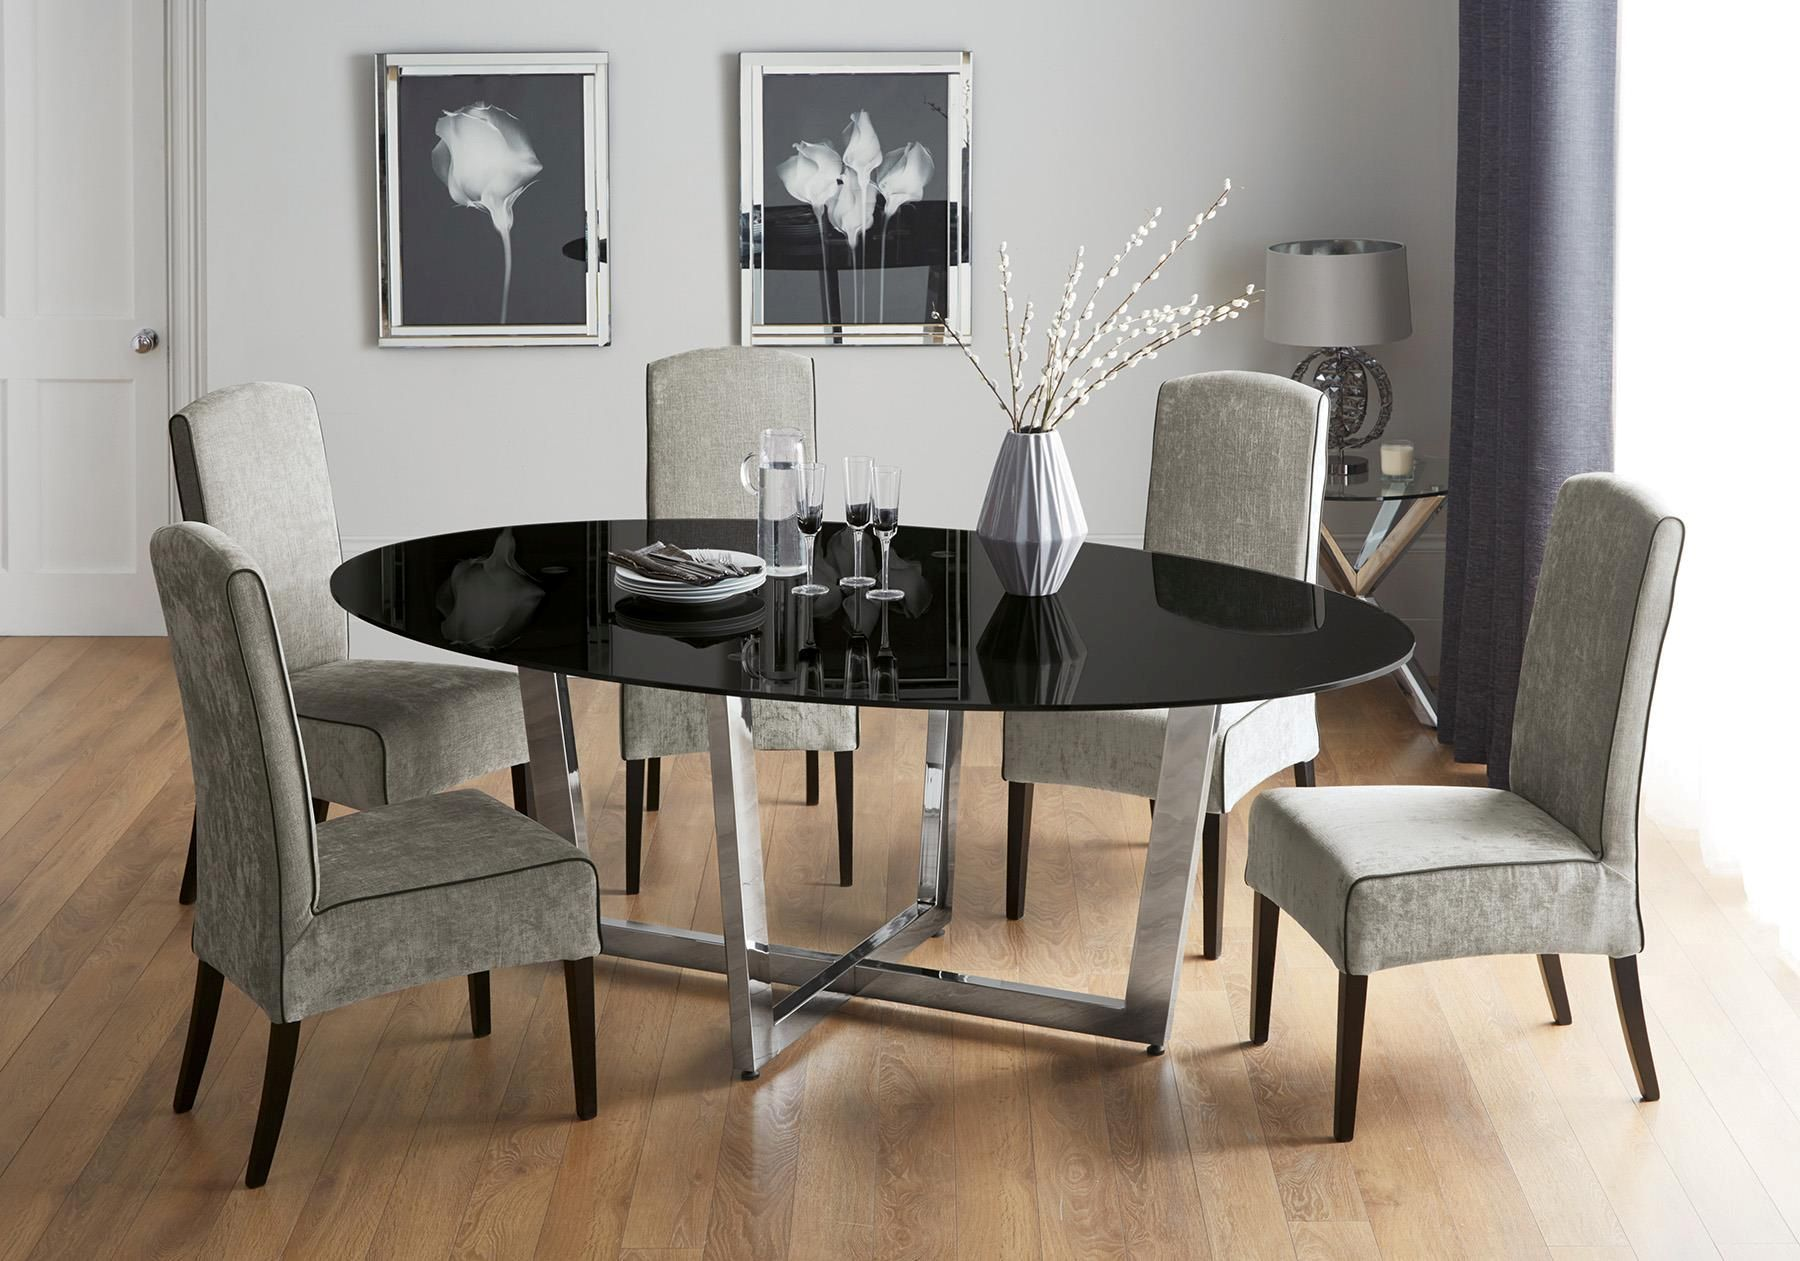 Home Goods Kitchen Table And Chairs Chair Cover Hire Manchester Uk Buy Bellagio Dining From The Next Online Shop